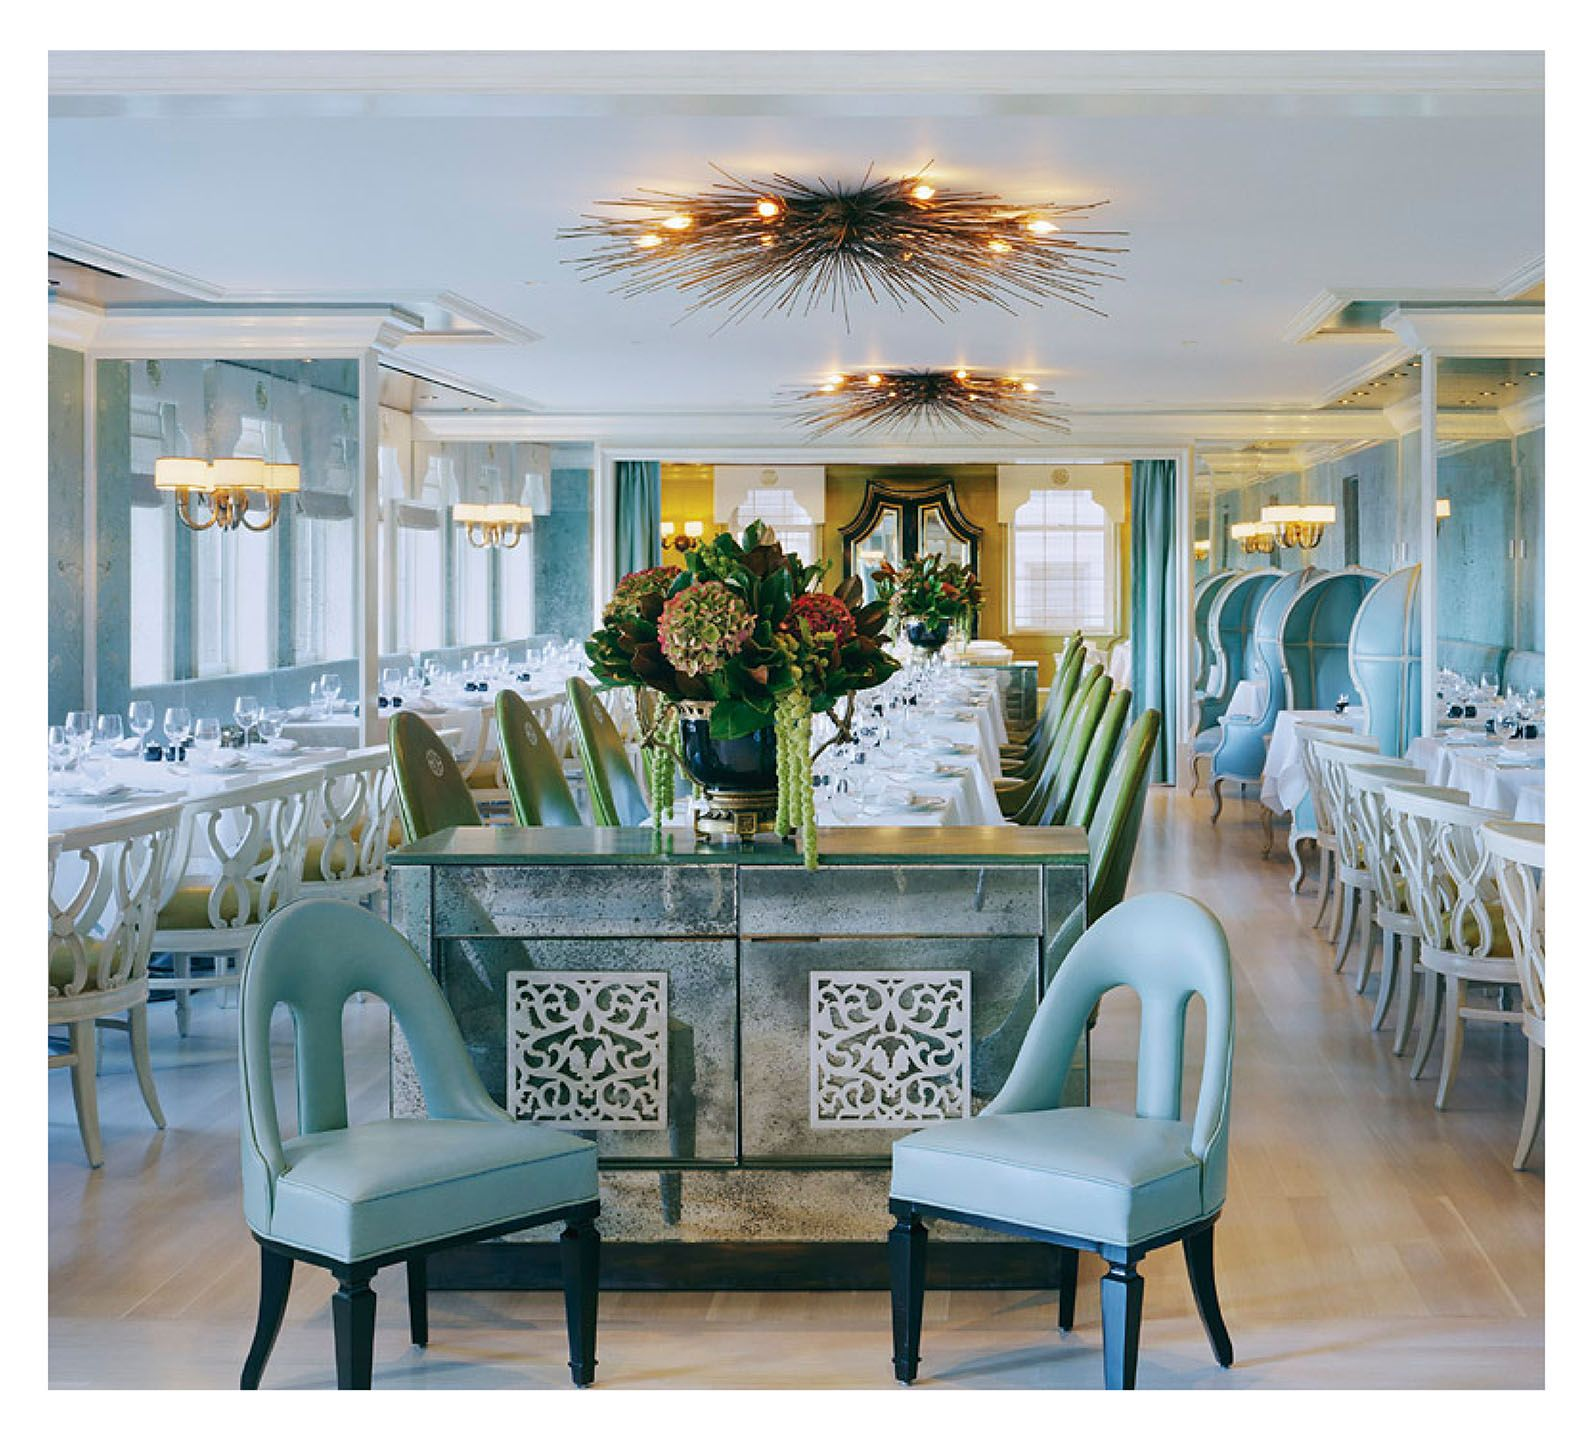 BERGDORF GOODMAN RESTURANT - KELLY WEARSTLER | 21th Century Design ...